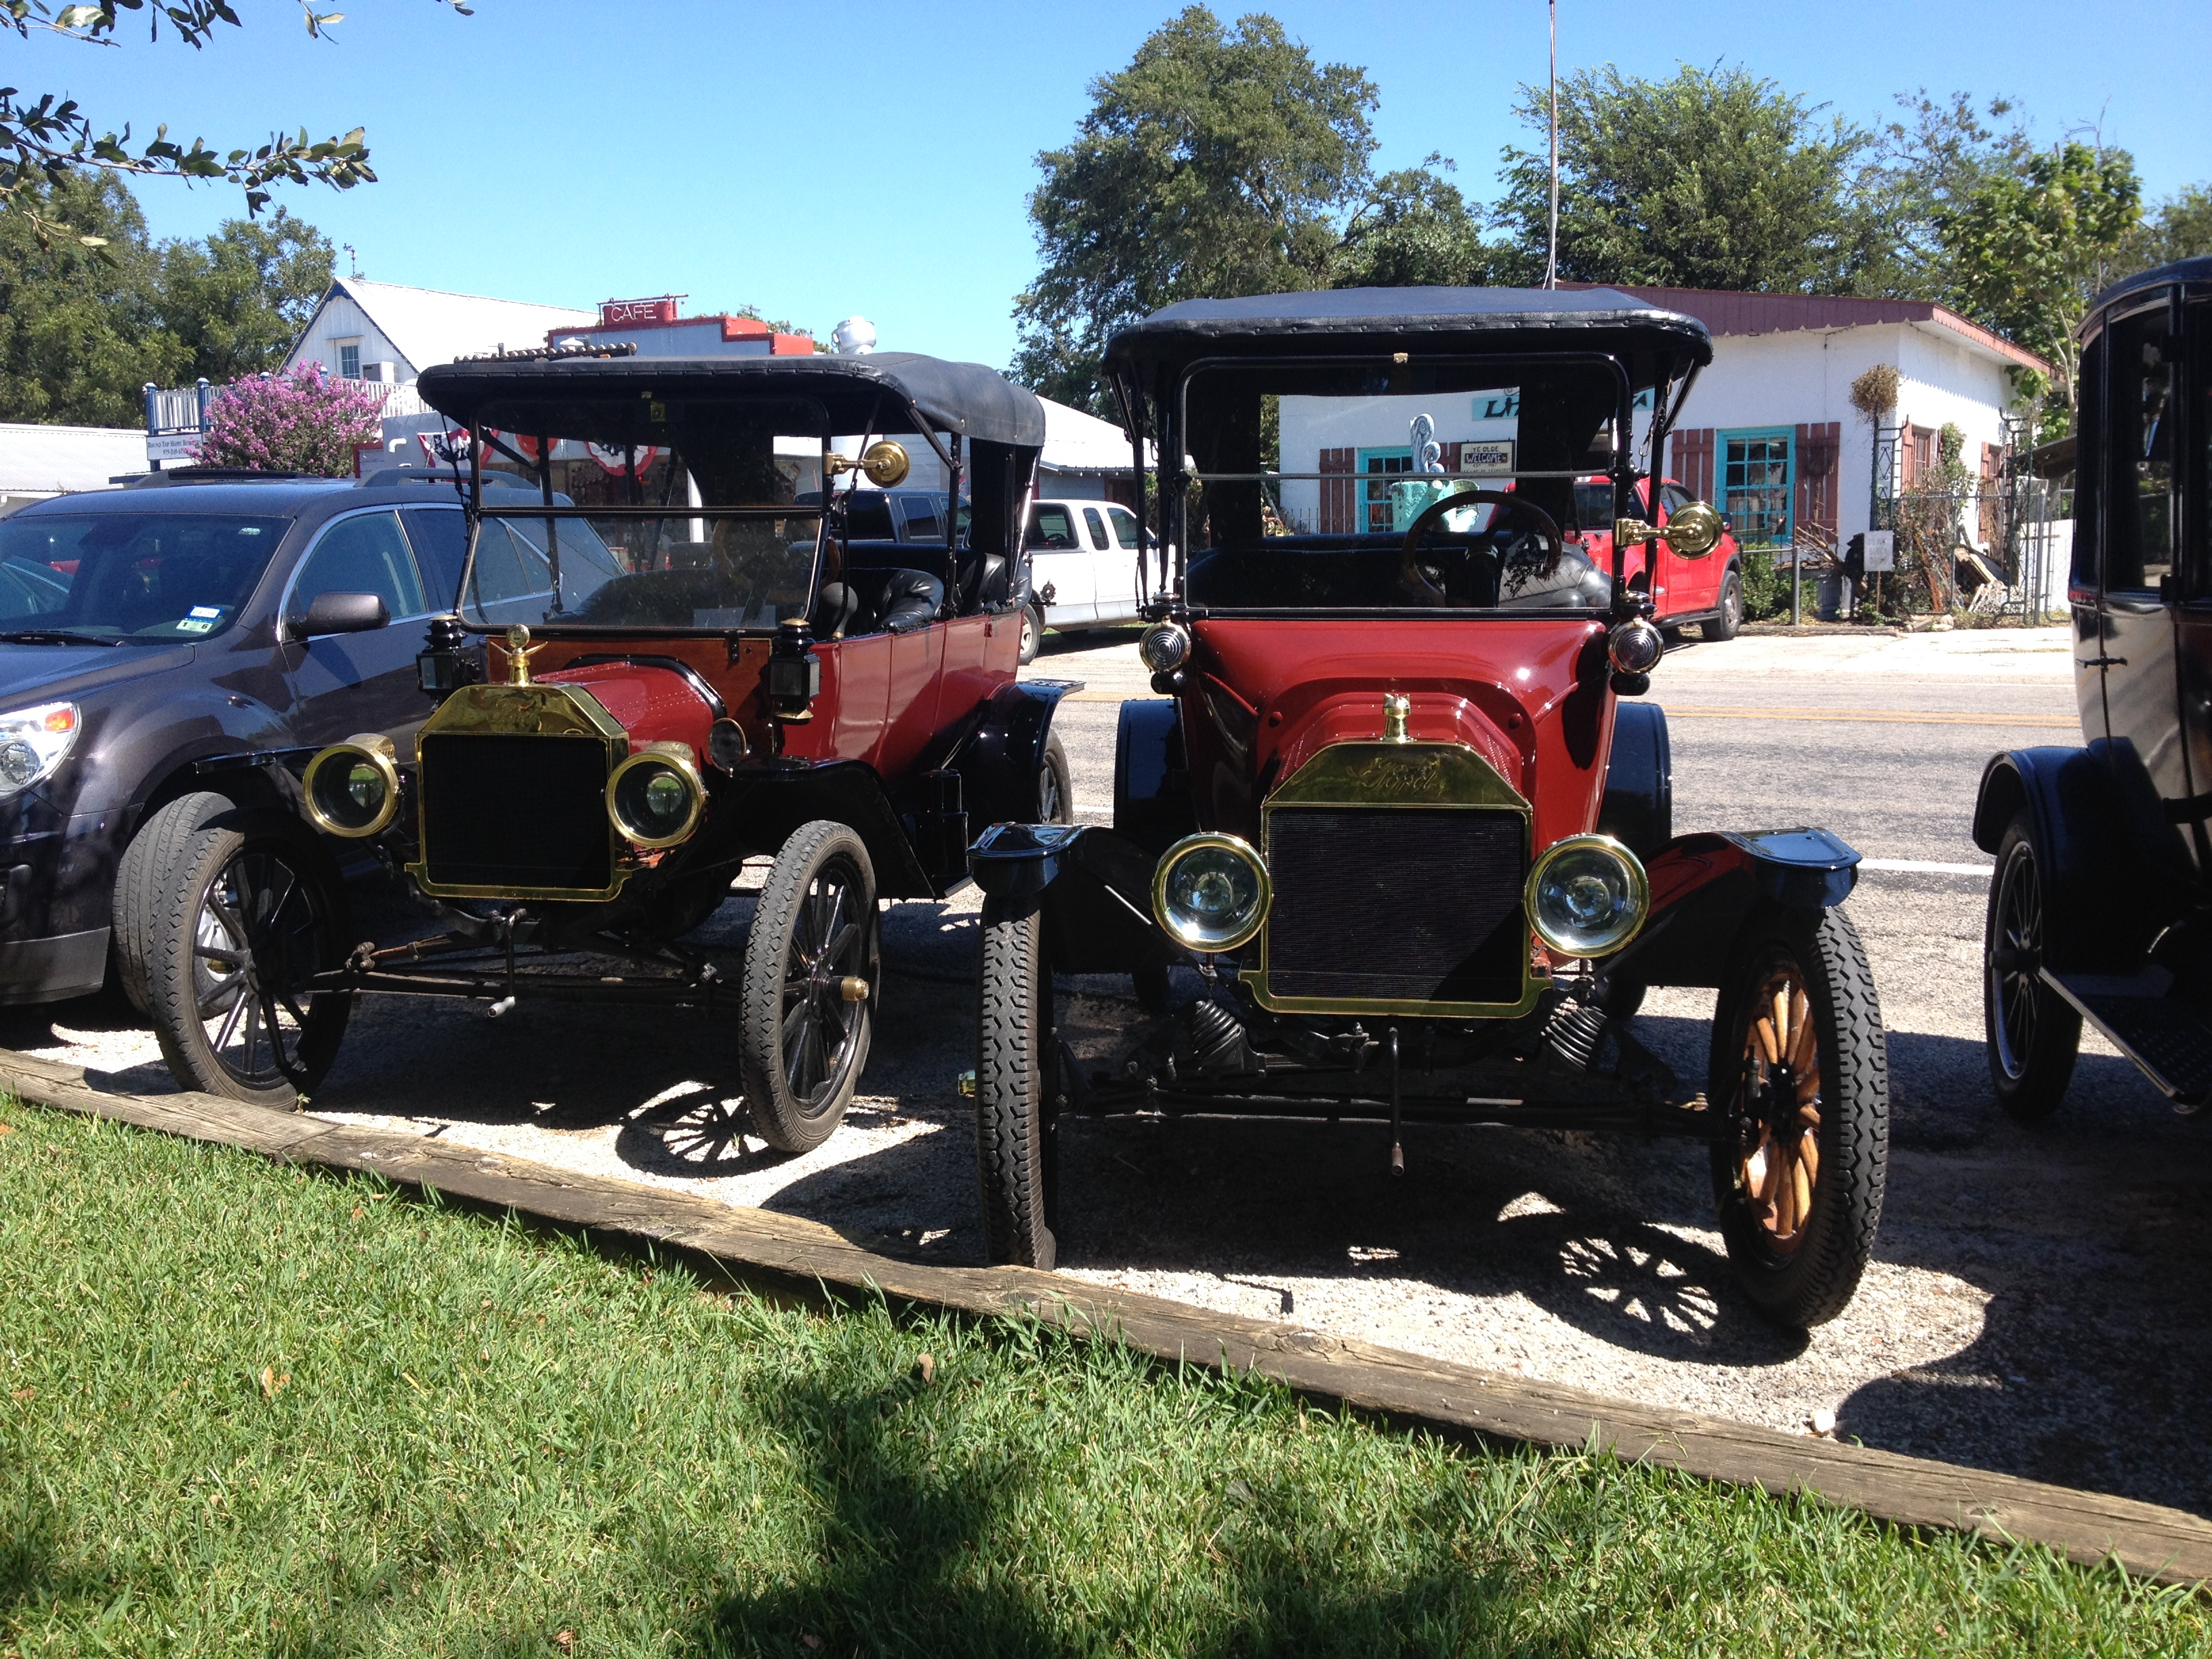 Old Car Festival at Greenfield Village (Sept. 3rd)